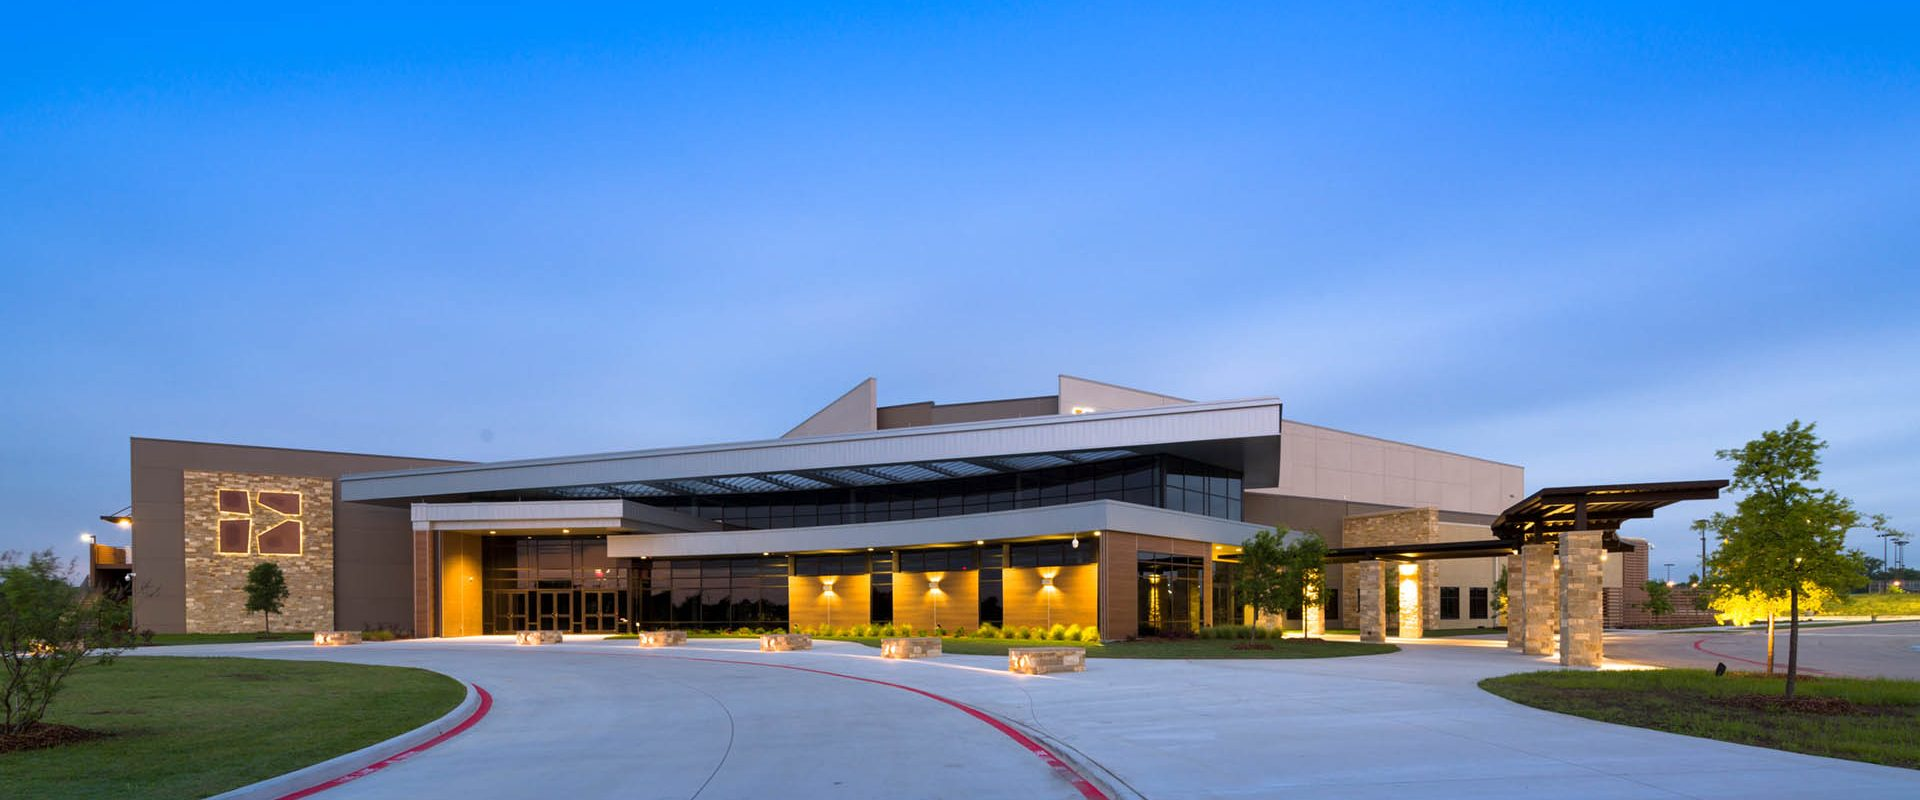 Preston Trail Community Church, Frisco, TX, photographed for HH Architects